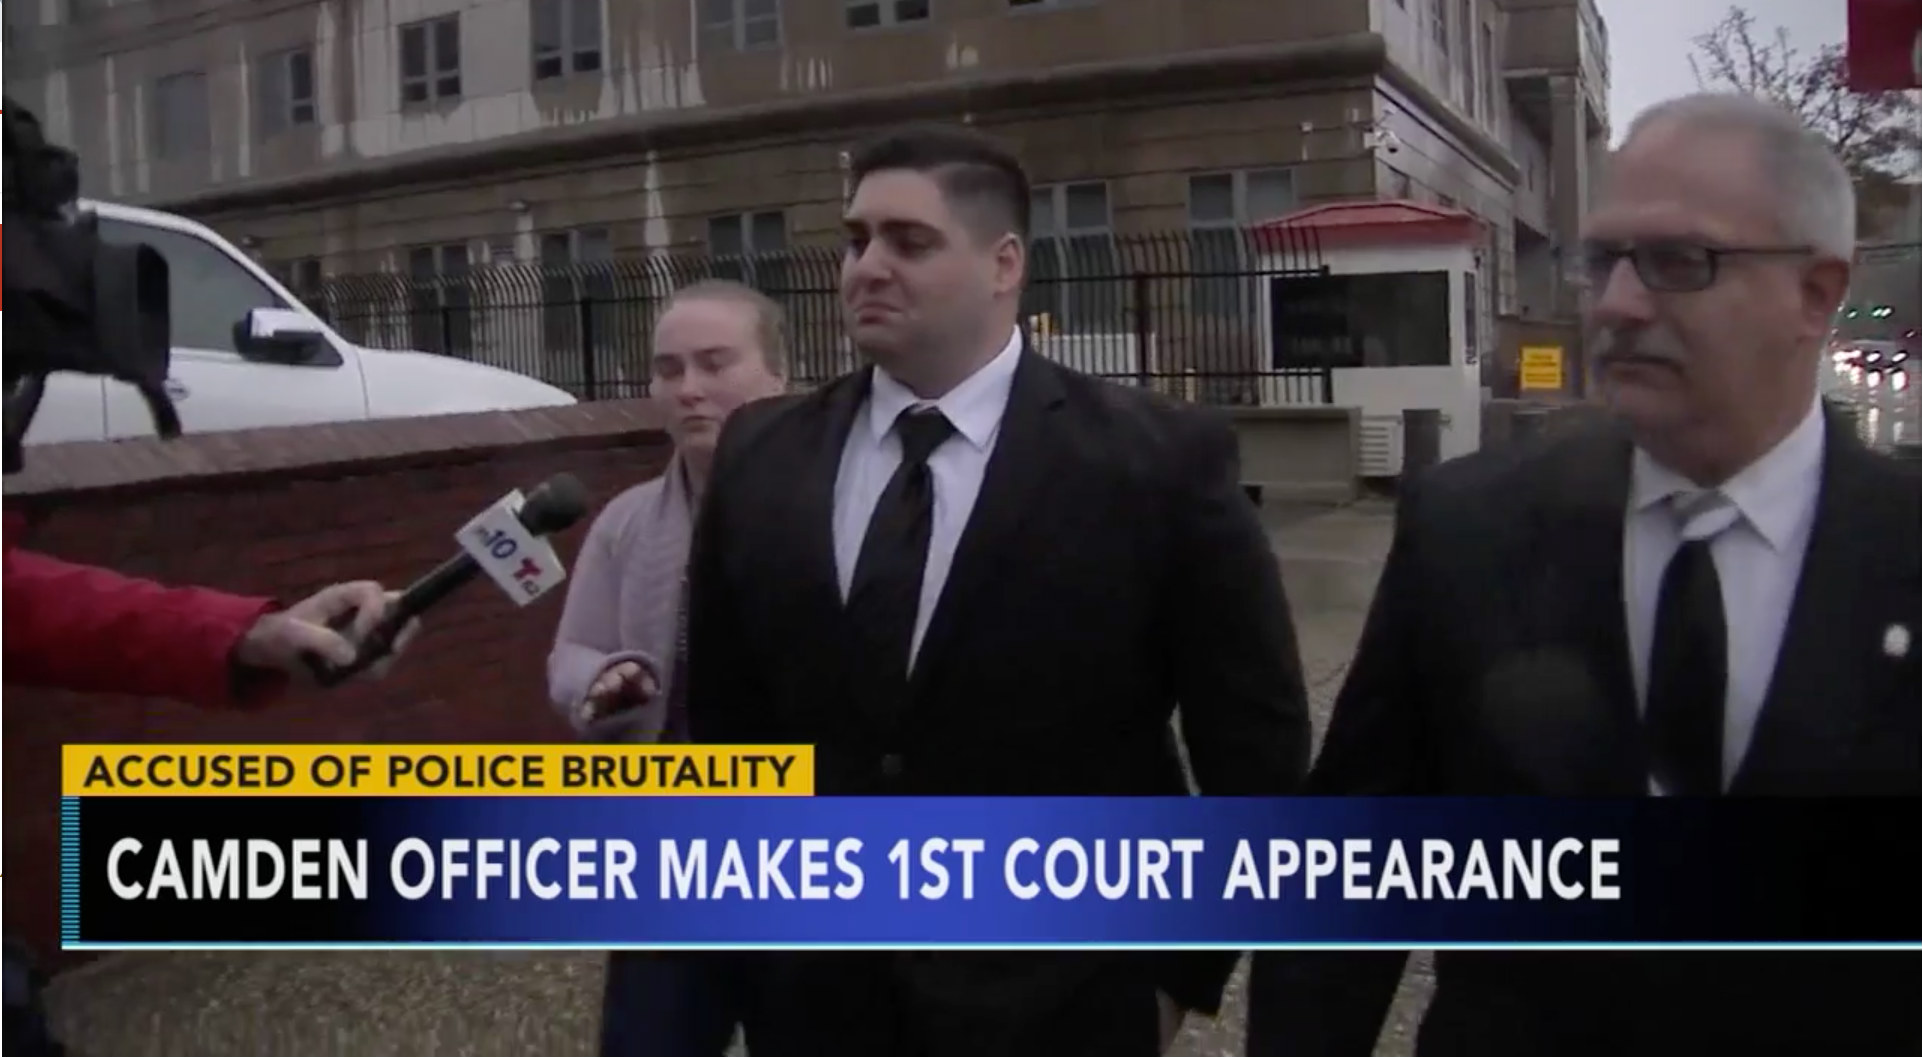 Camden County Police Officer Nicholas Romantino (center), 25, of Egg Harbor, was released on a $50,00 bond after a grand jury charged him with punching an unarmed suspect in the head.